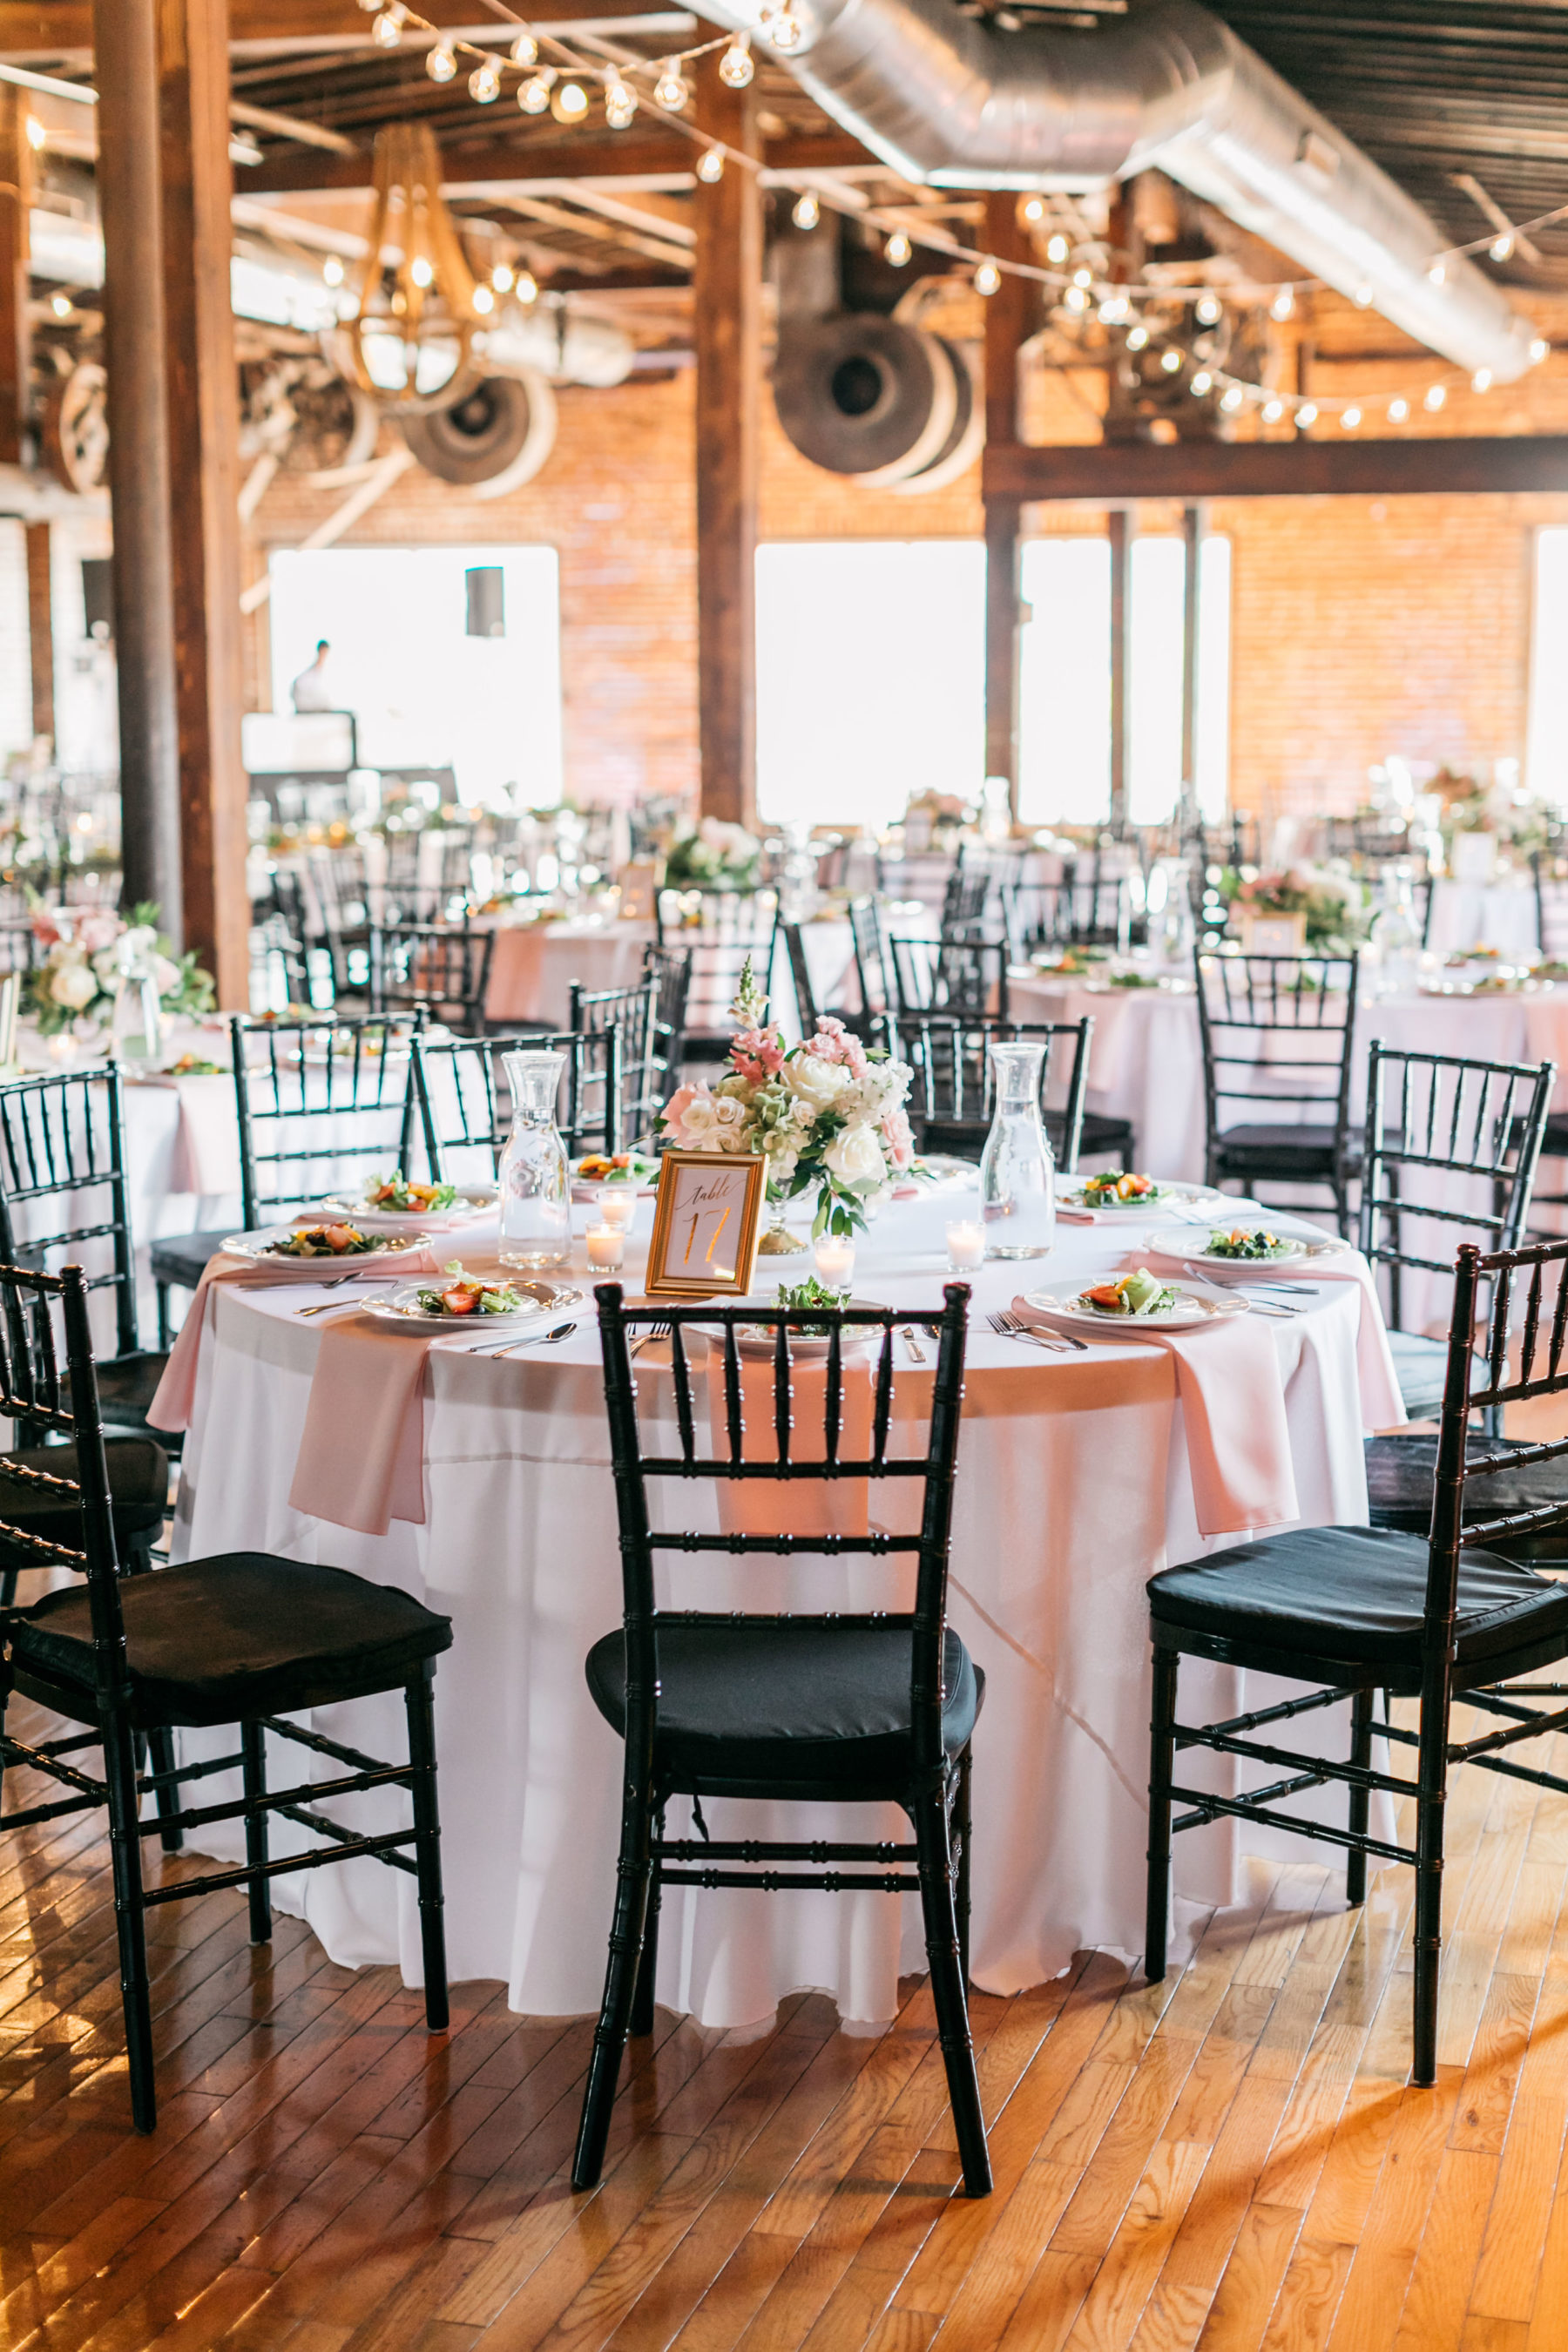 Wedding reception decor: Simply Elegant Nashville Wedding captured by Meredith Teasley